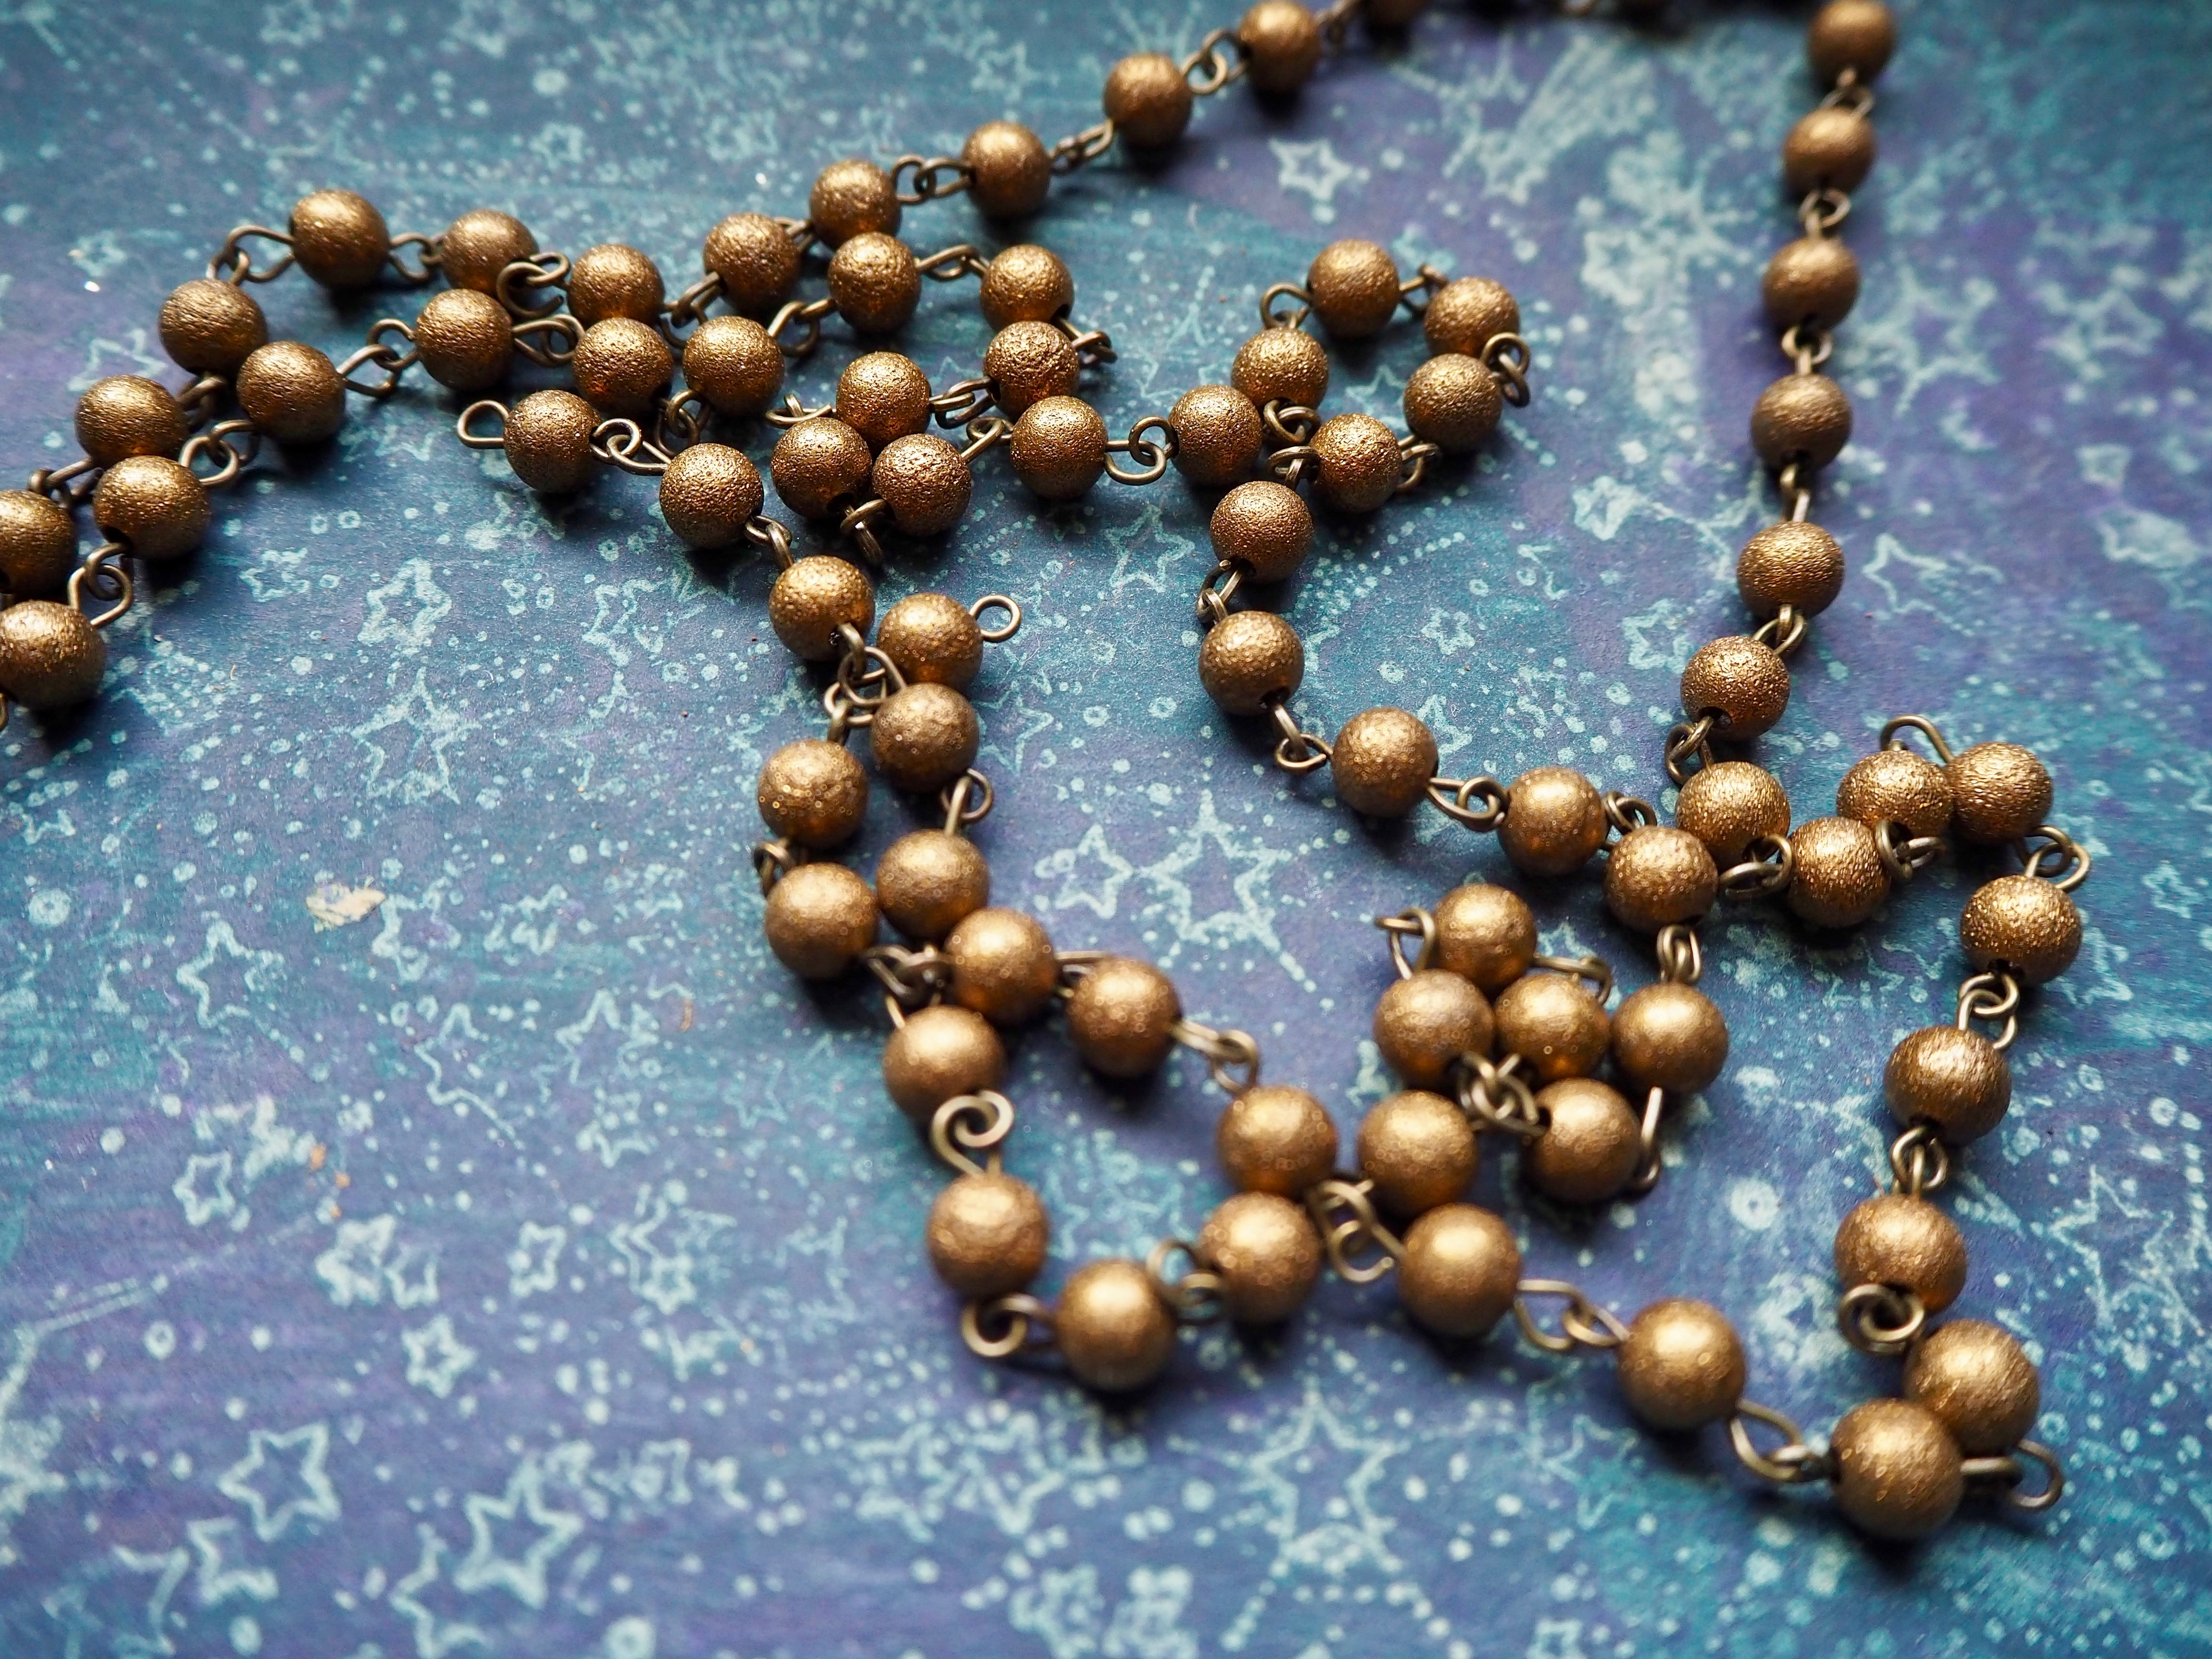 ONE METER 6mm Textured Brass Round Beads Rosary Necklace Chains with Antique Bronze Links